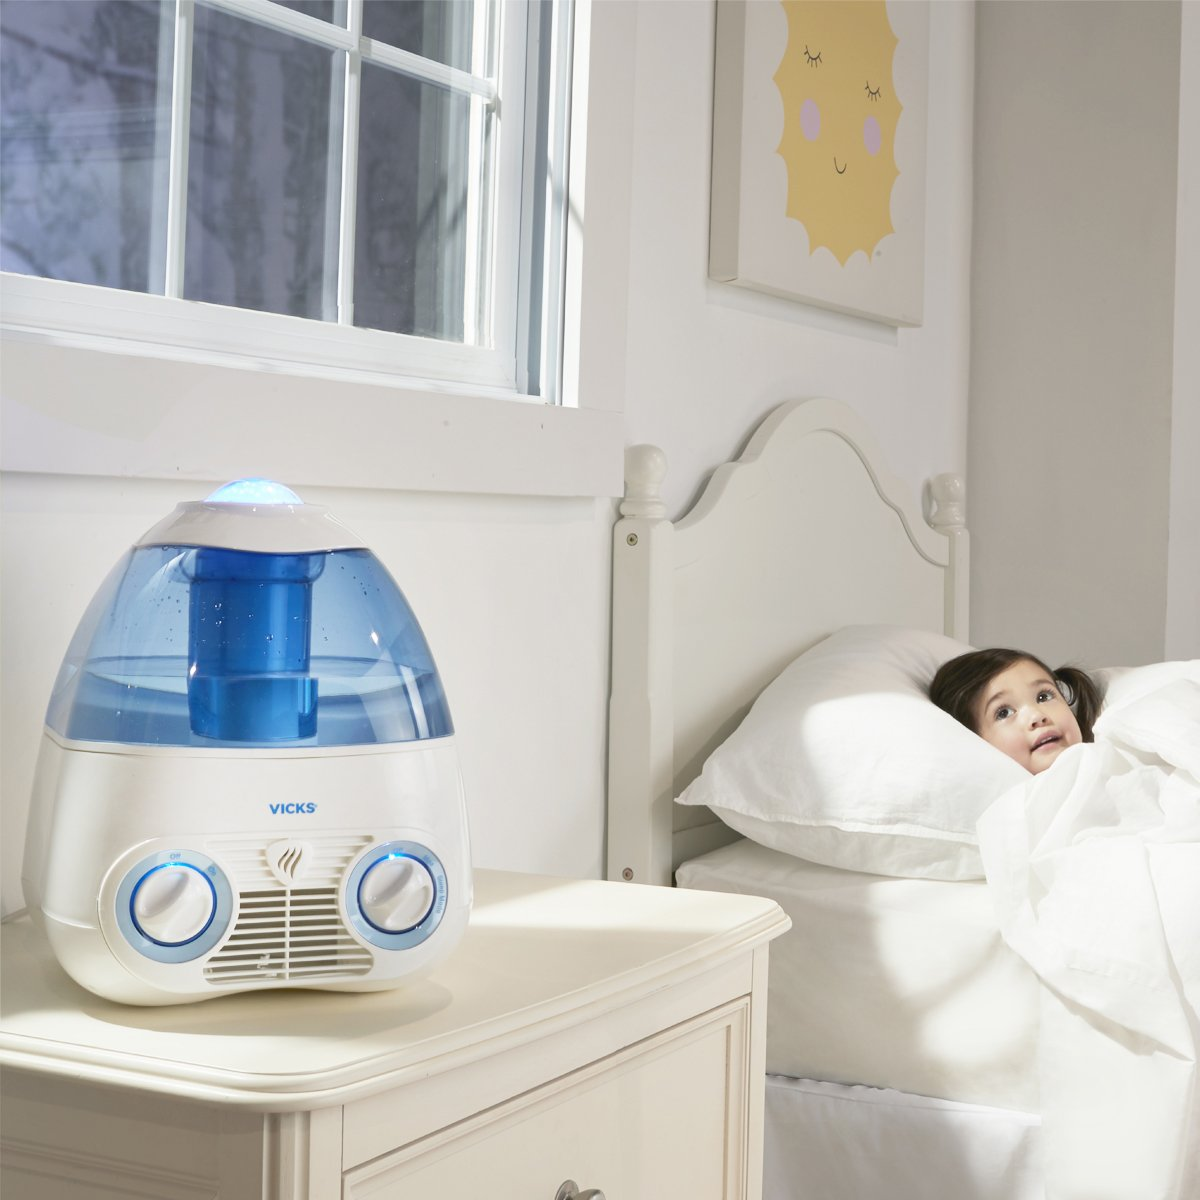 vicks humidifier instructions starry night